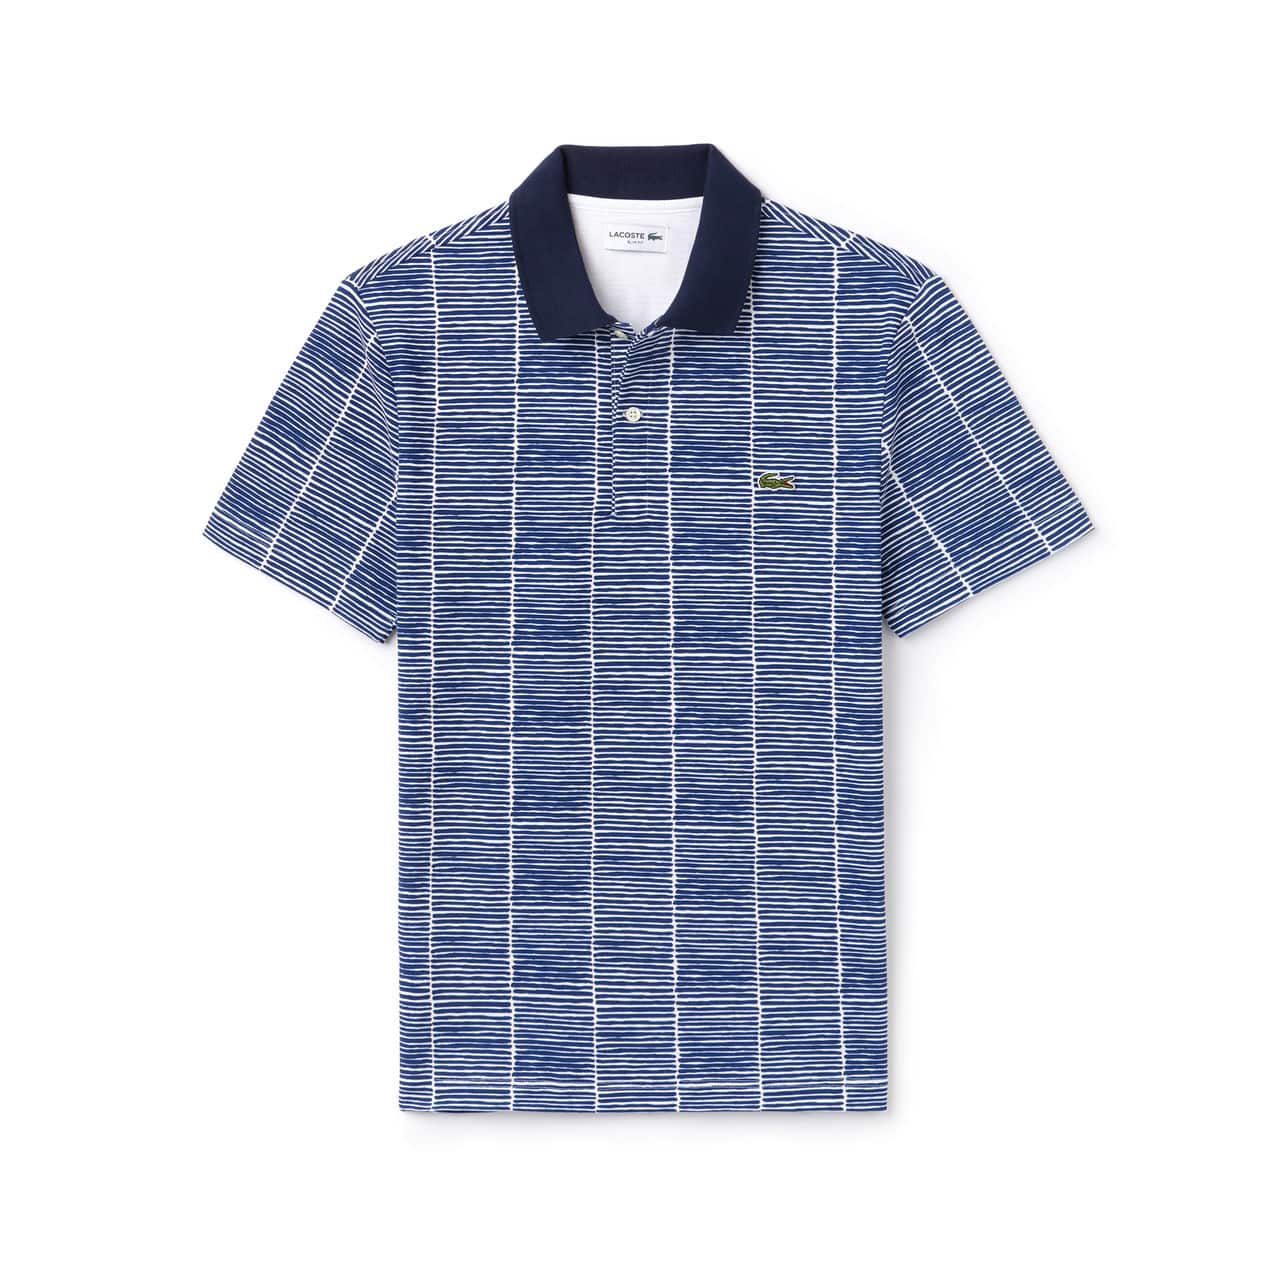 856c91b047 Lacoste Slim Fit Print Cotton Piqué Polo – Homme – WHITE/ROYAL BLUE ...